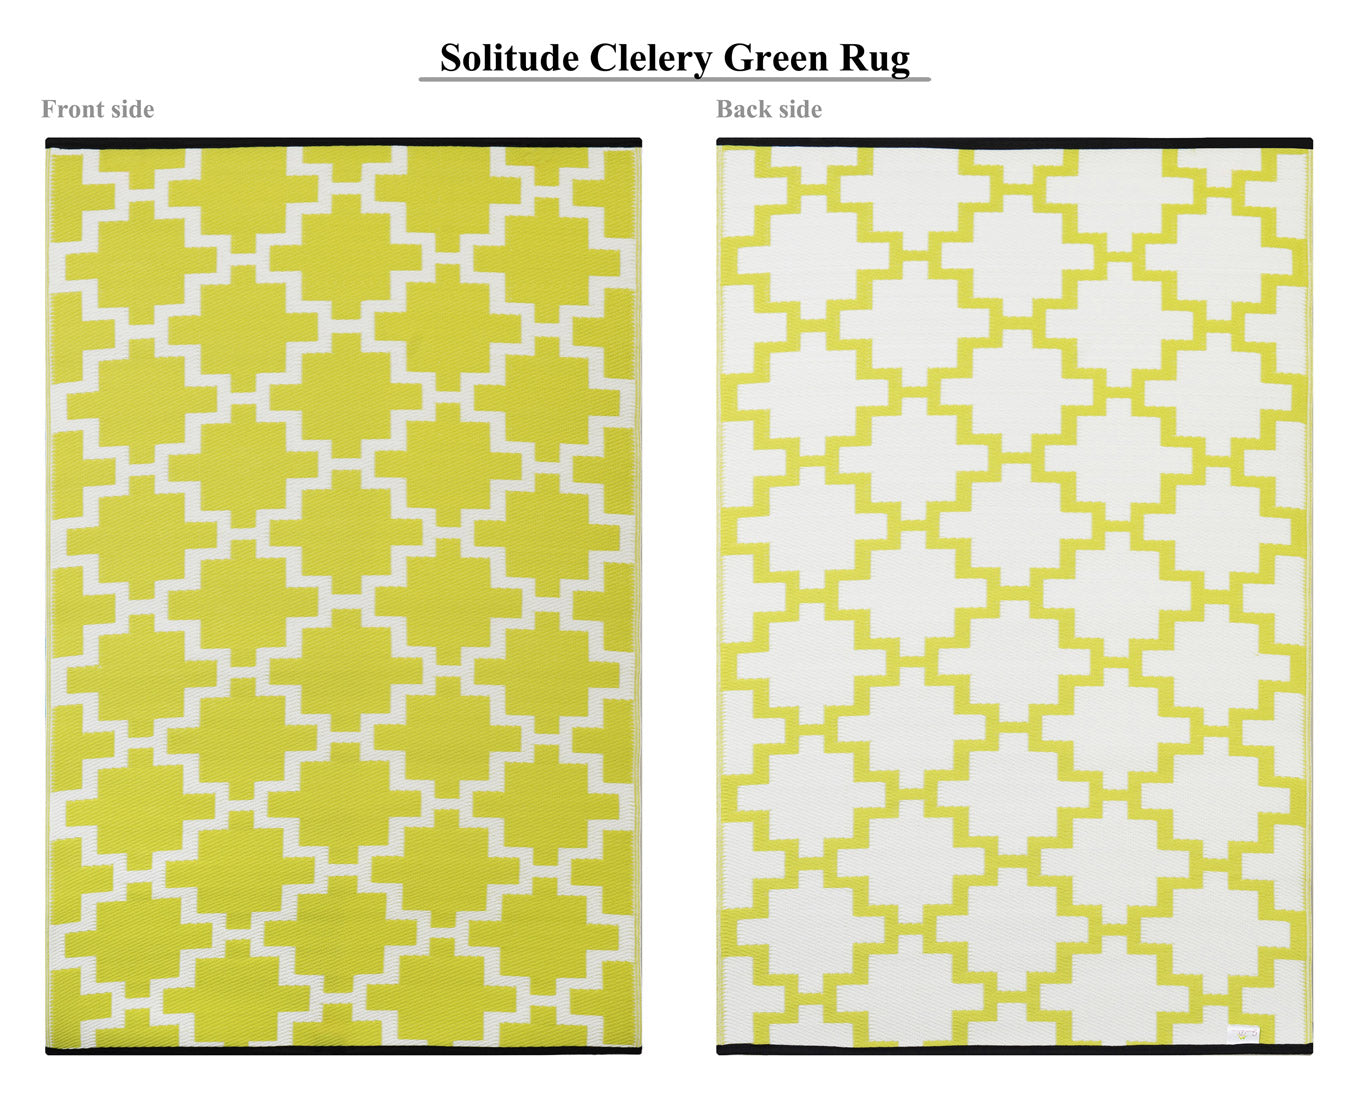 Solitude Outdoor Recycled Plastic Rug (Celery Green/White)